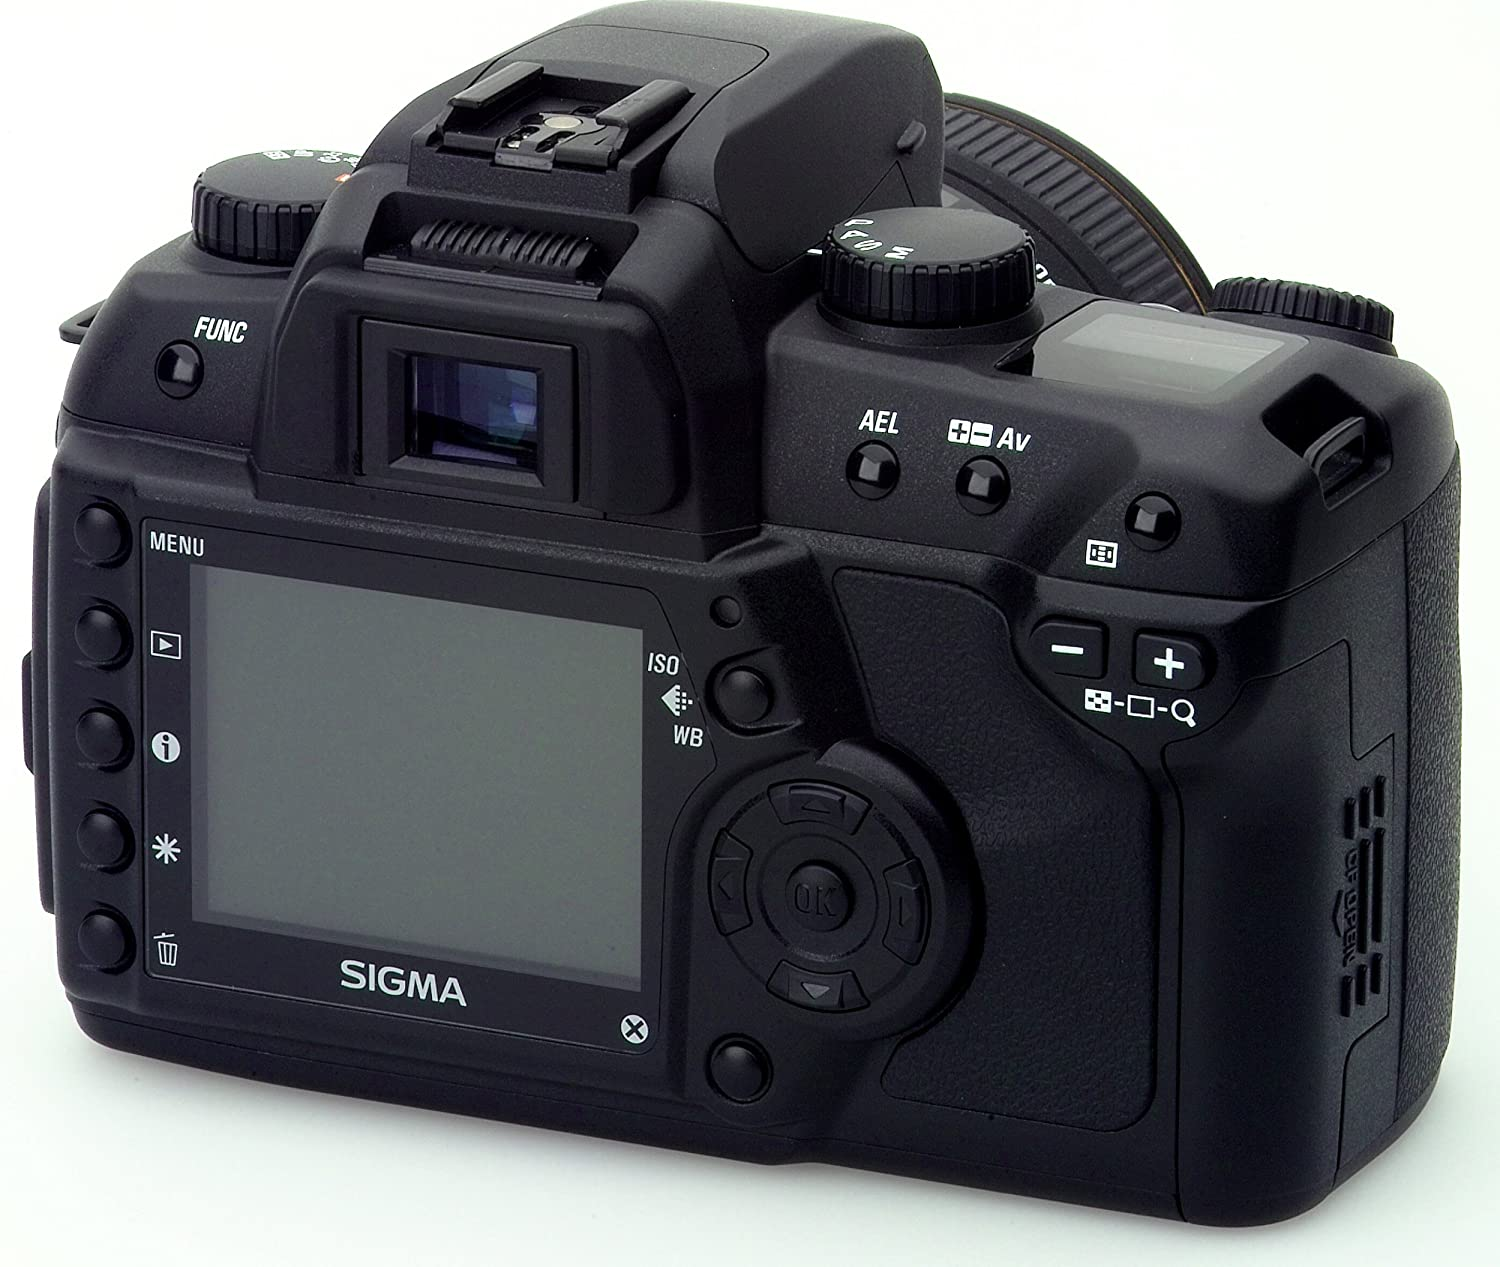 Amazon.com: Sigma SD14 14 MP cámara réflex digital (solo ...